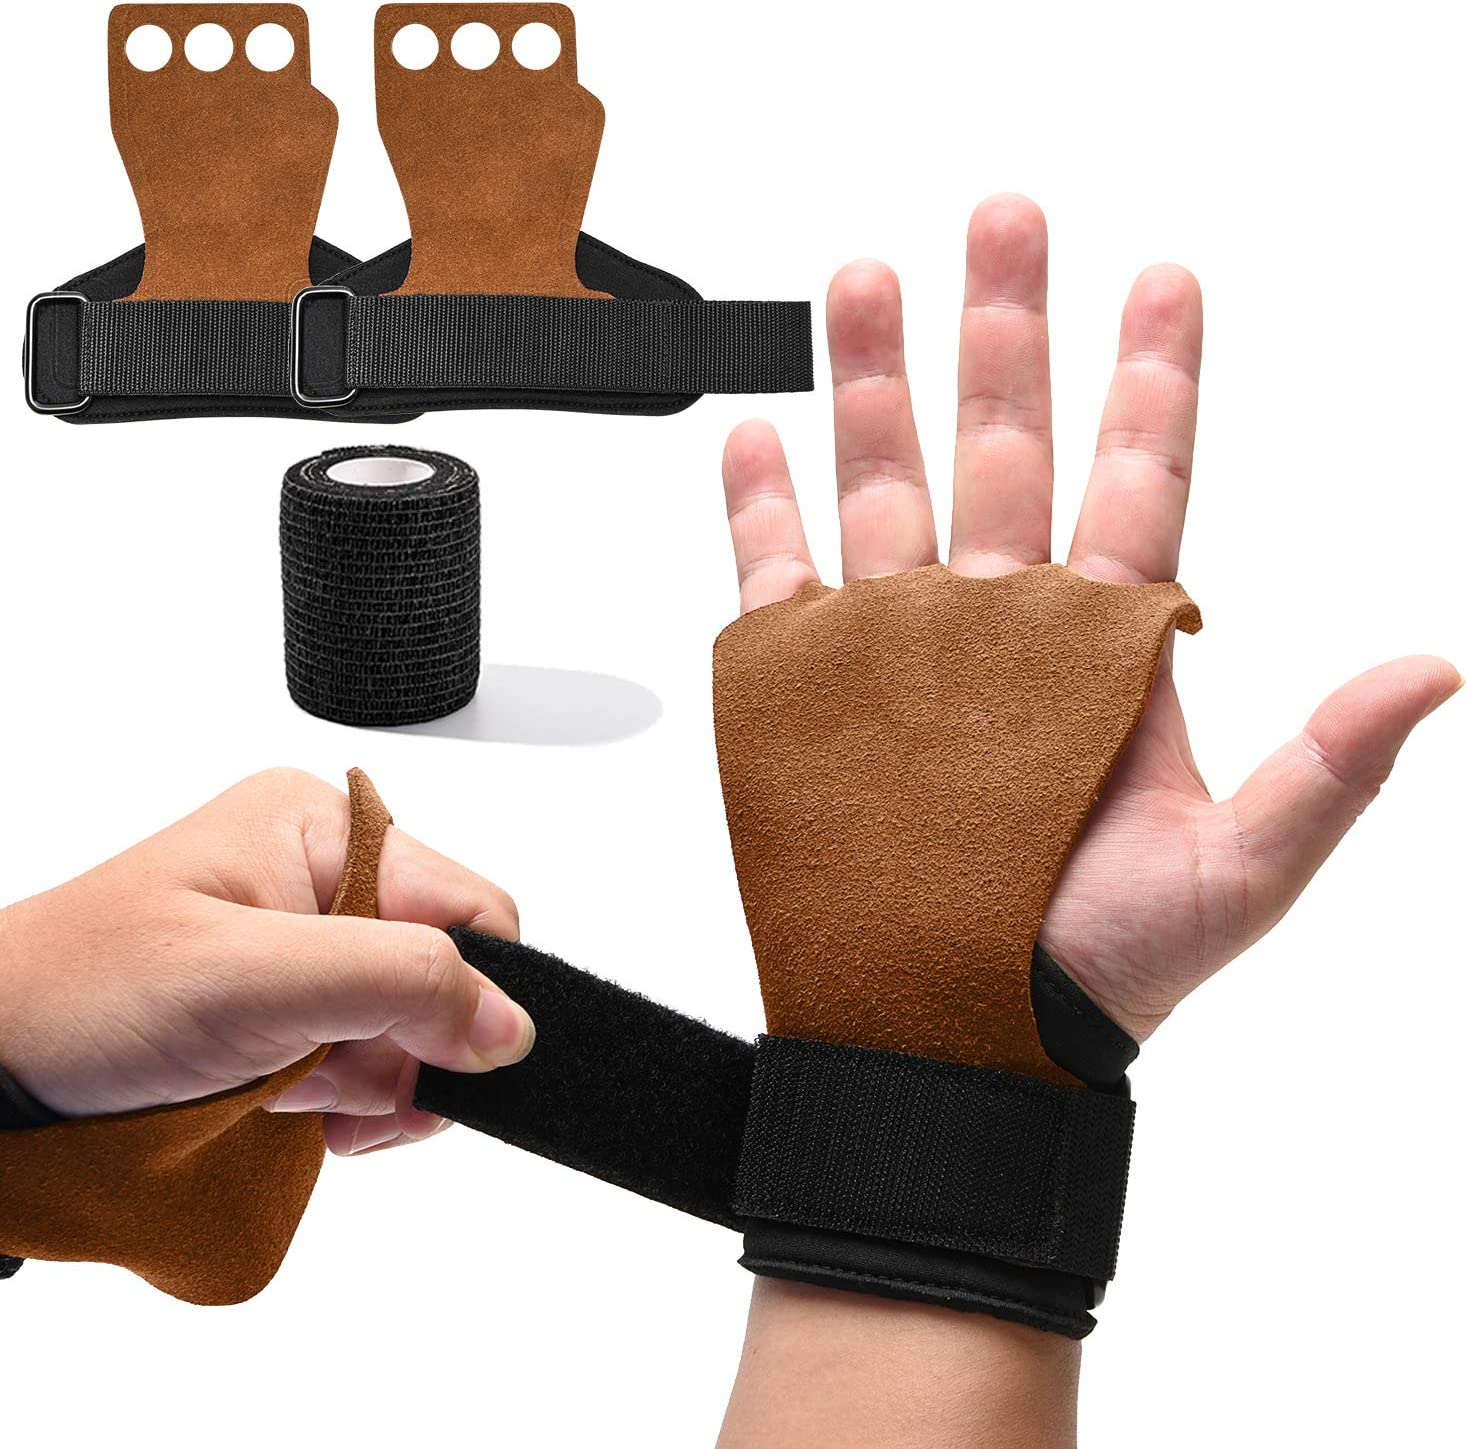 5 Brand Cheap Sale Venue popular ONLYWIN 3 Hole Leather Hand Grips Fing for Rings Gymnastics Palm